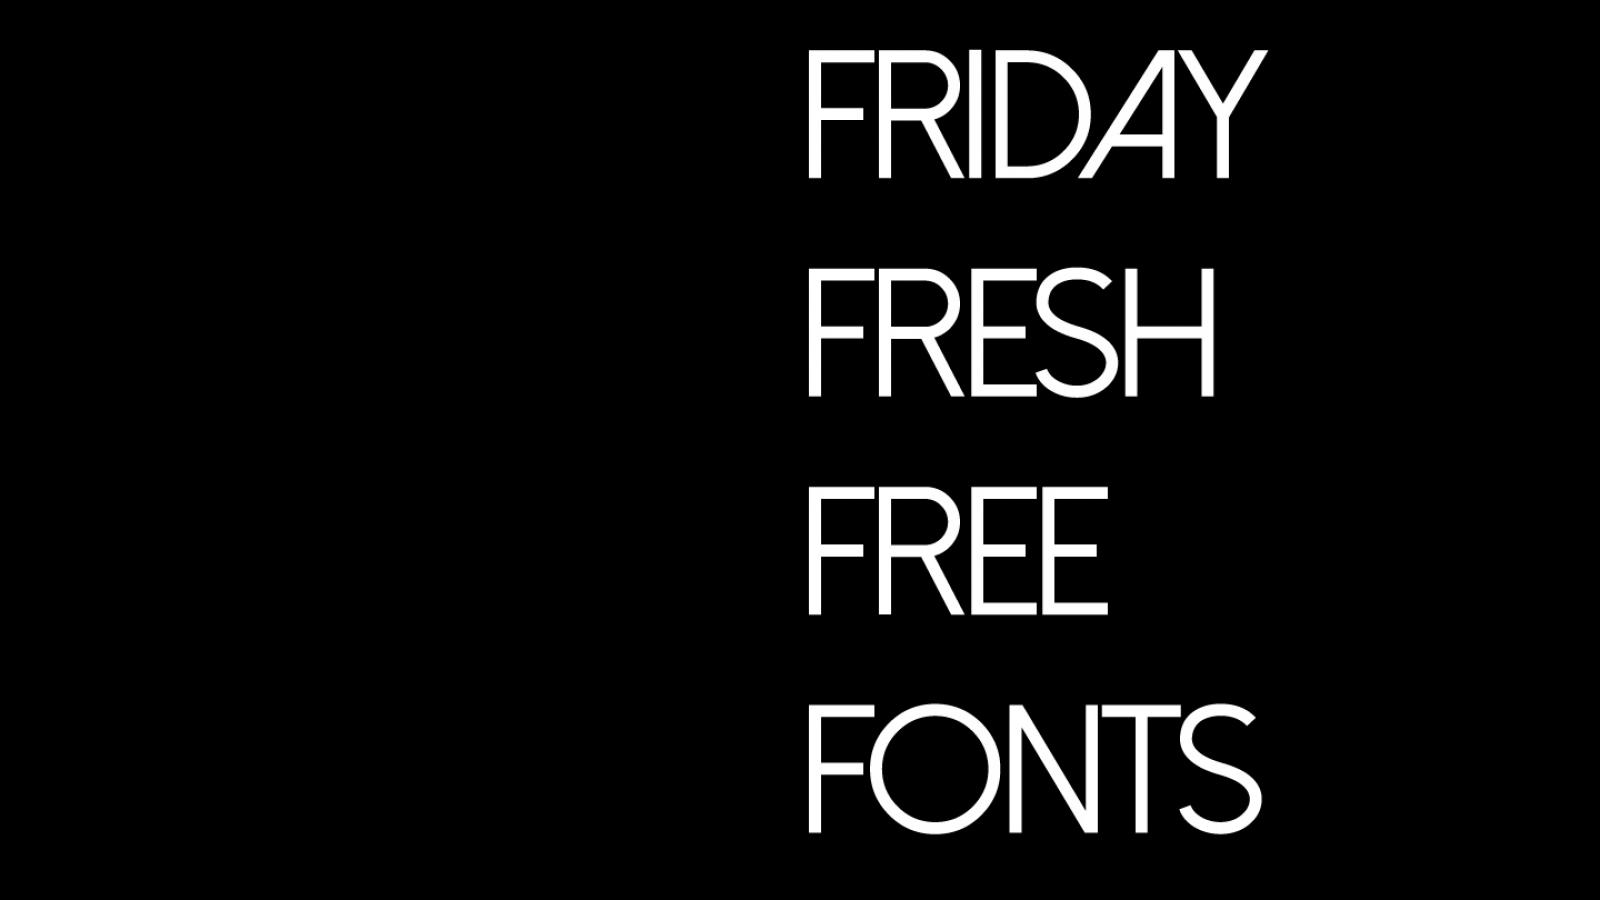 Friday Fresh Free Fonts - Dolce Vita, Borg, Mohave